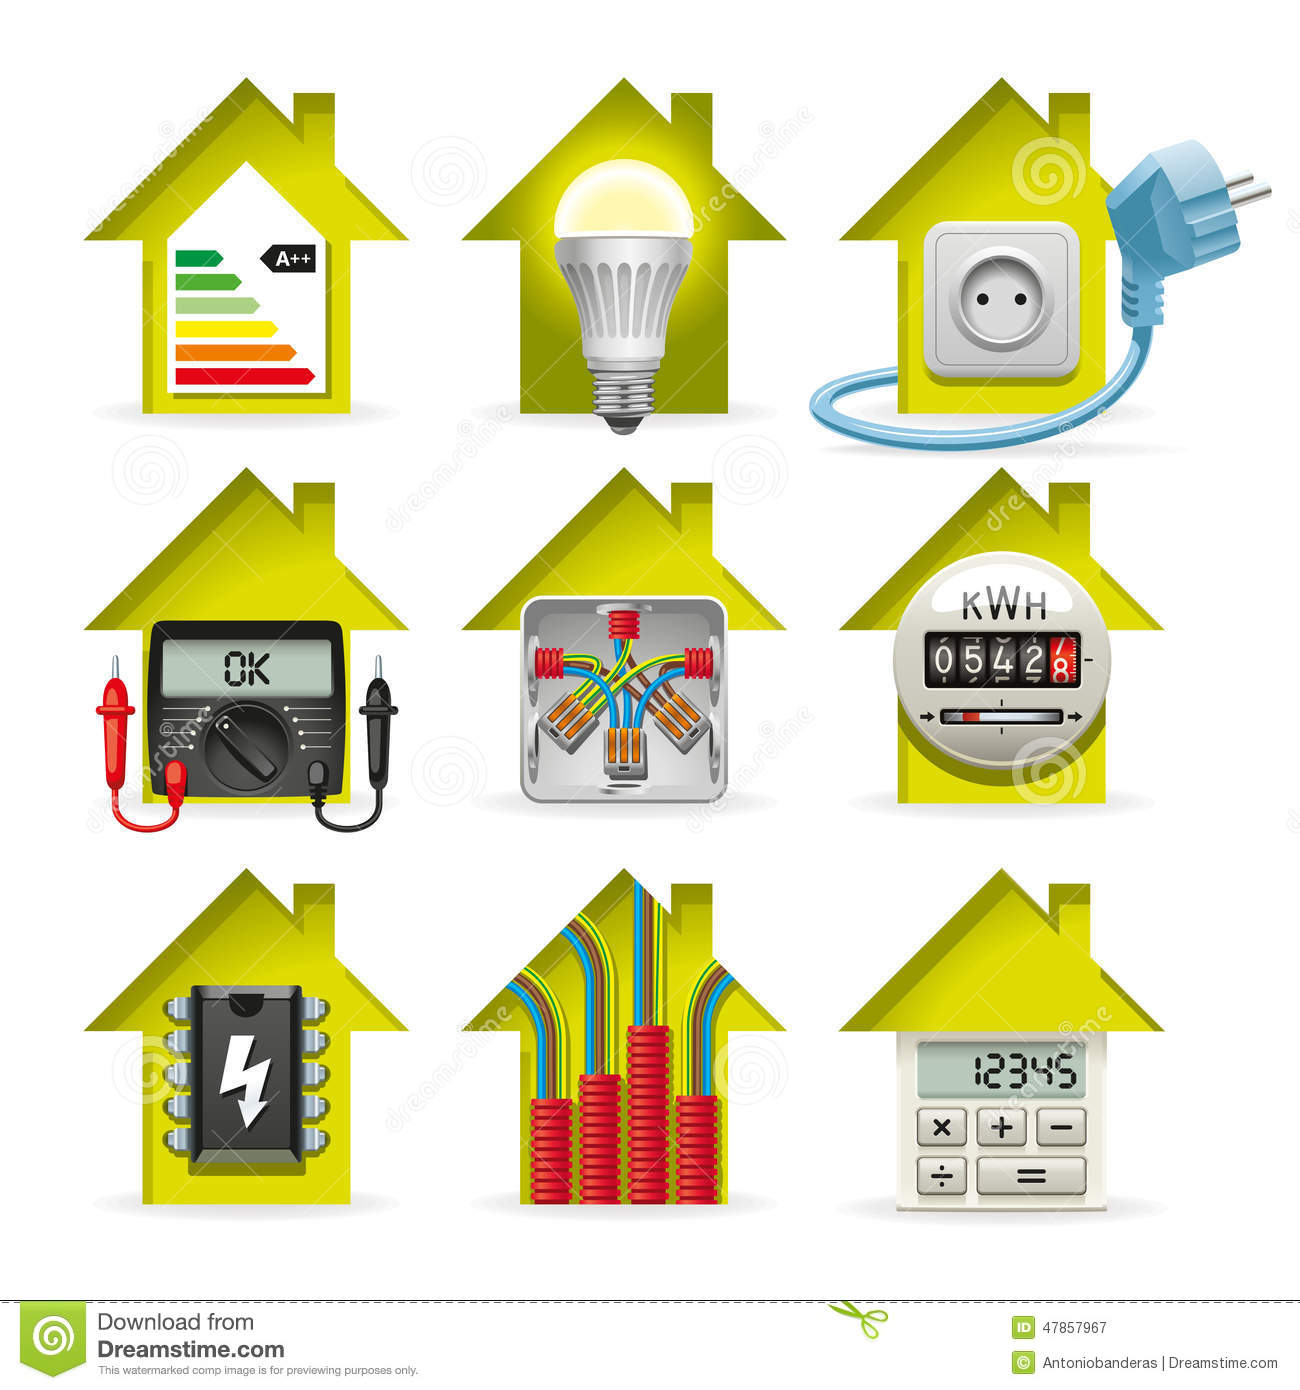 hight resolution of house wiring logo wiring diagram electricity home icons stock vector illustration of tester 47857967icons installation of